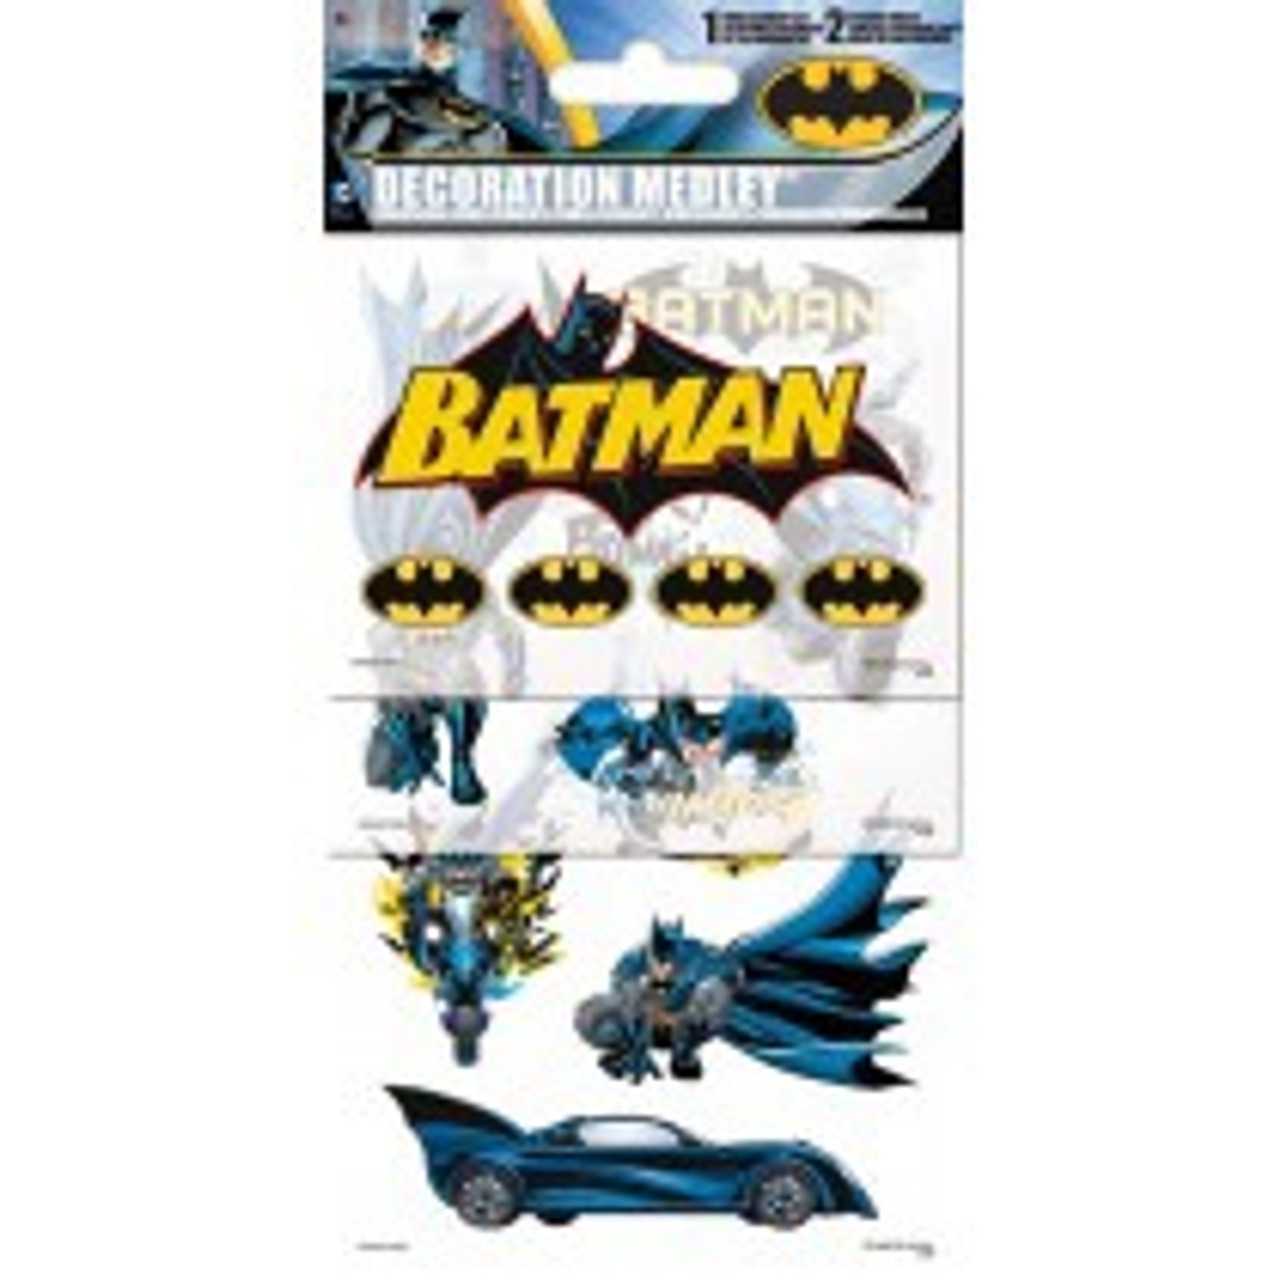 BATMAN DECORATION MEDLEY